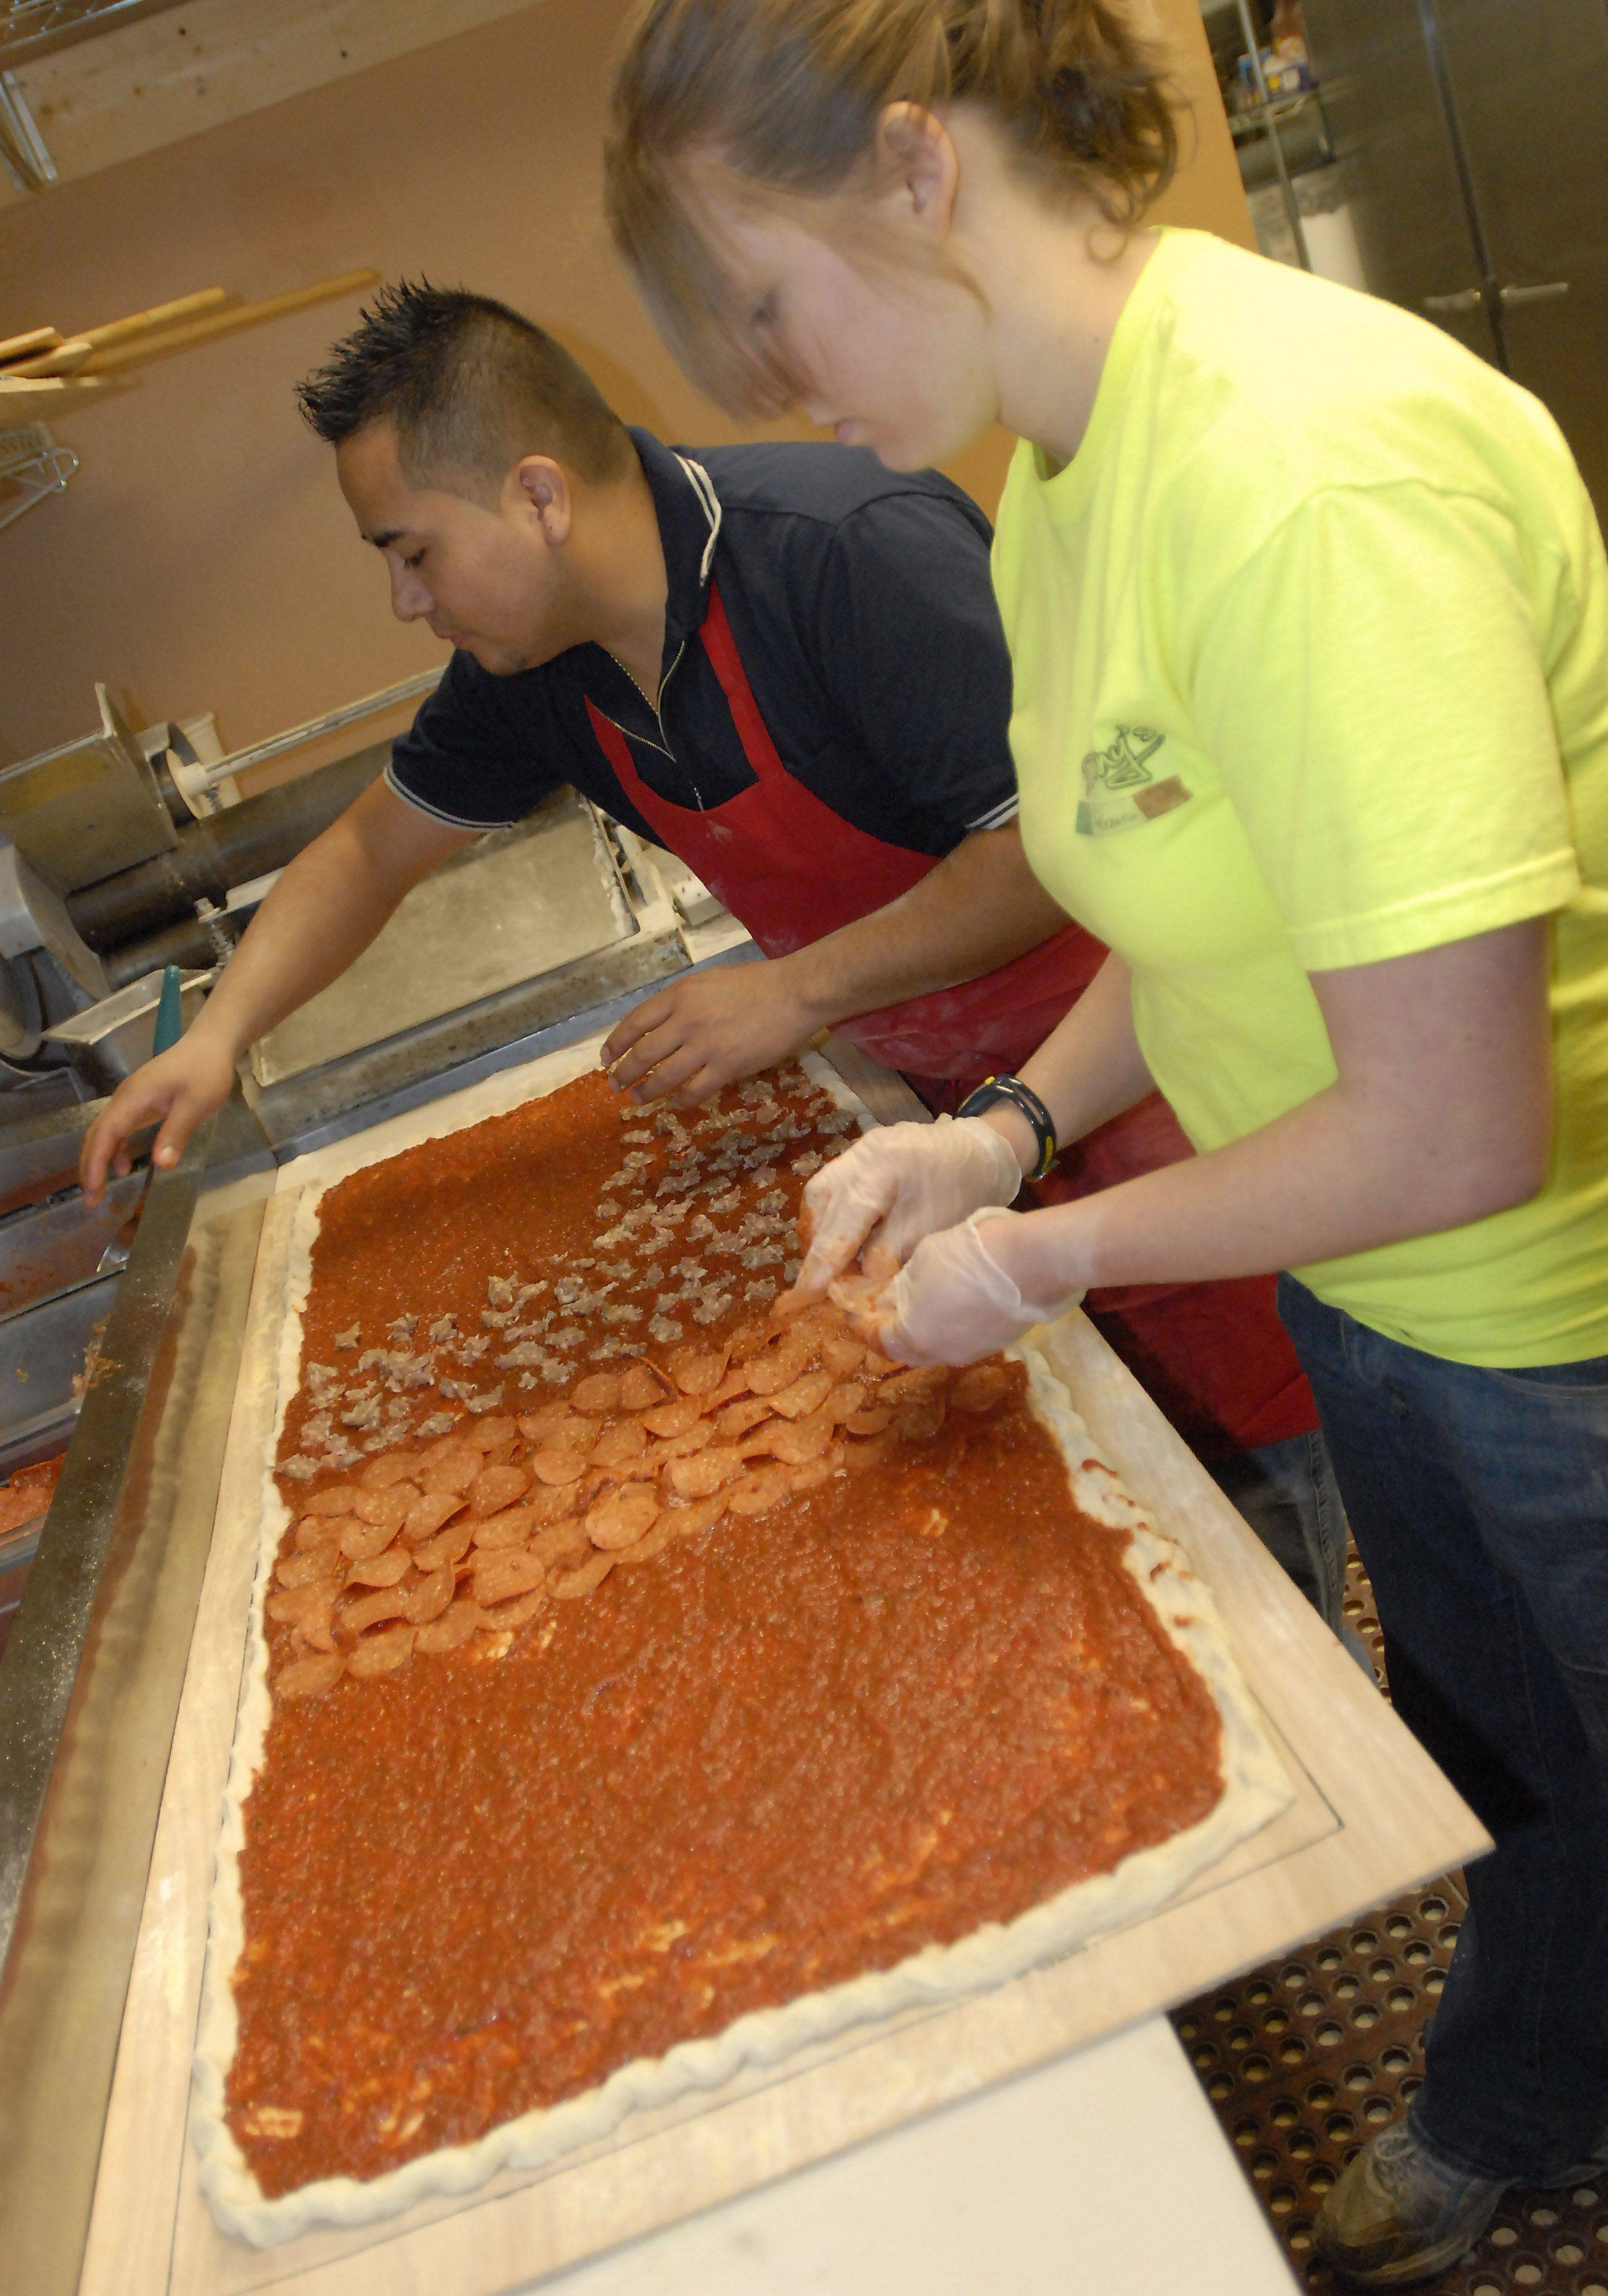 Donny's Pizzeria employees Miguel Morales and Maggie Holm prepare the Epic pizza, 20 by 50 inches.